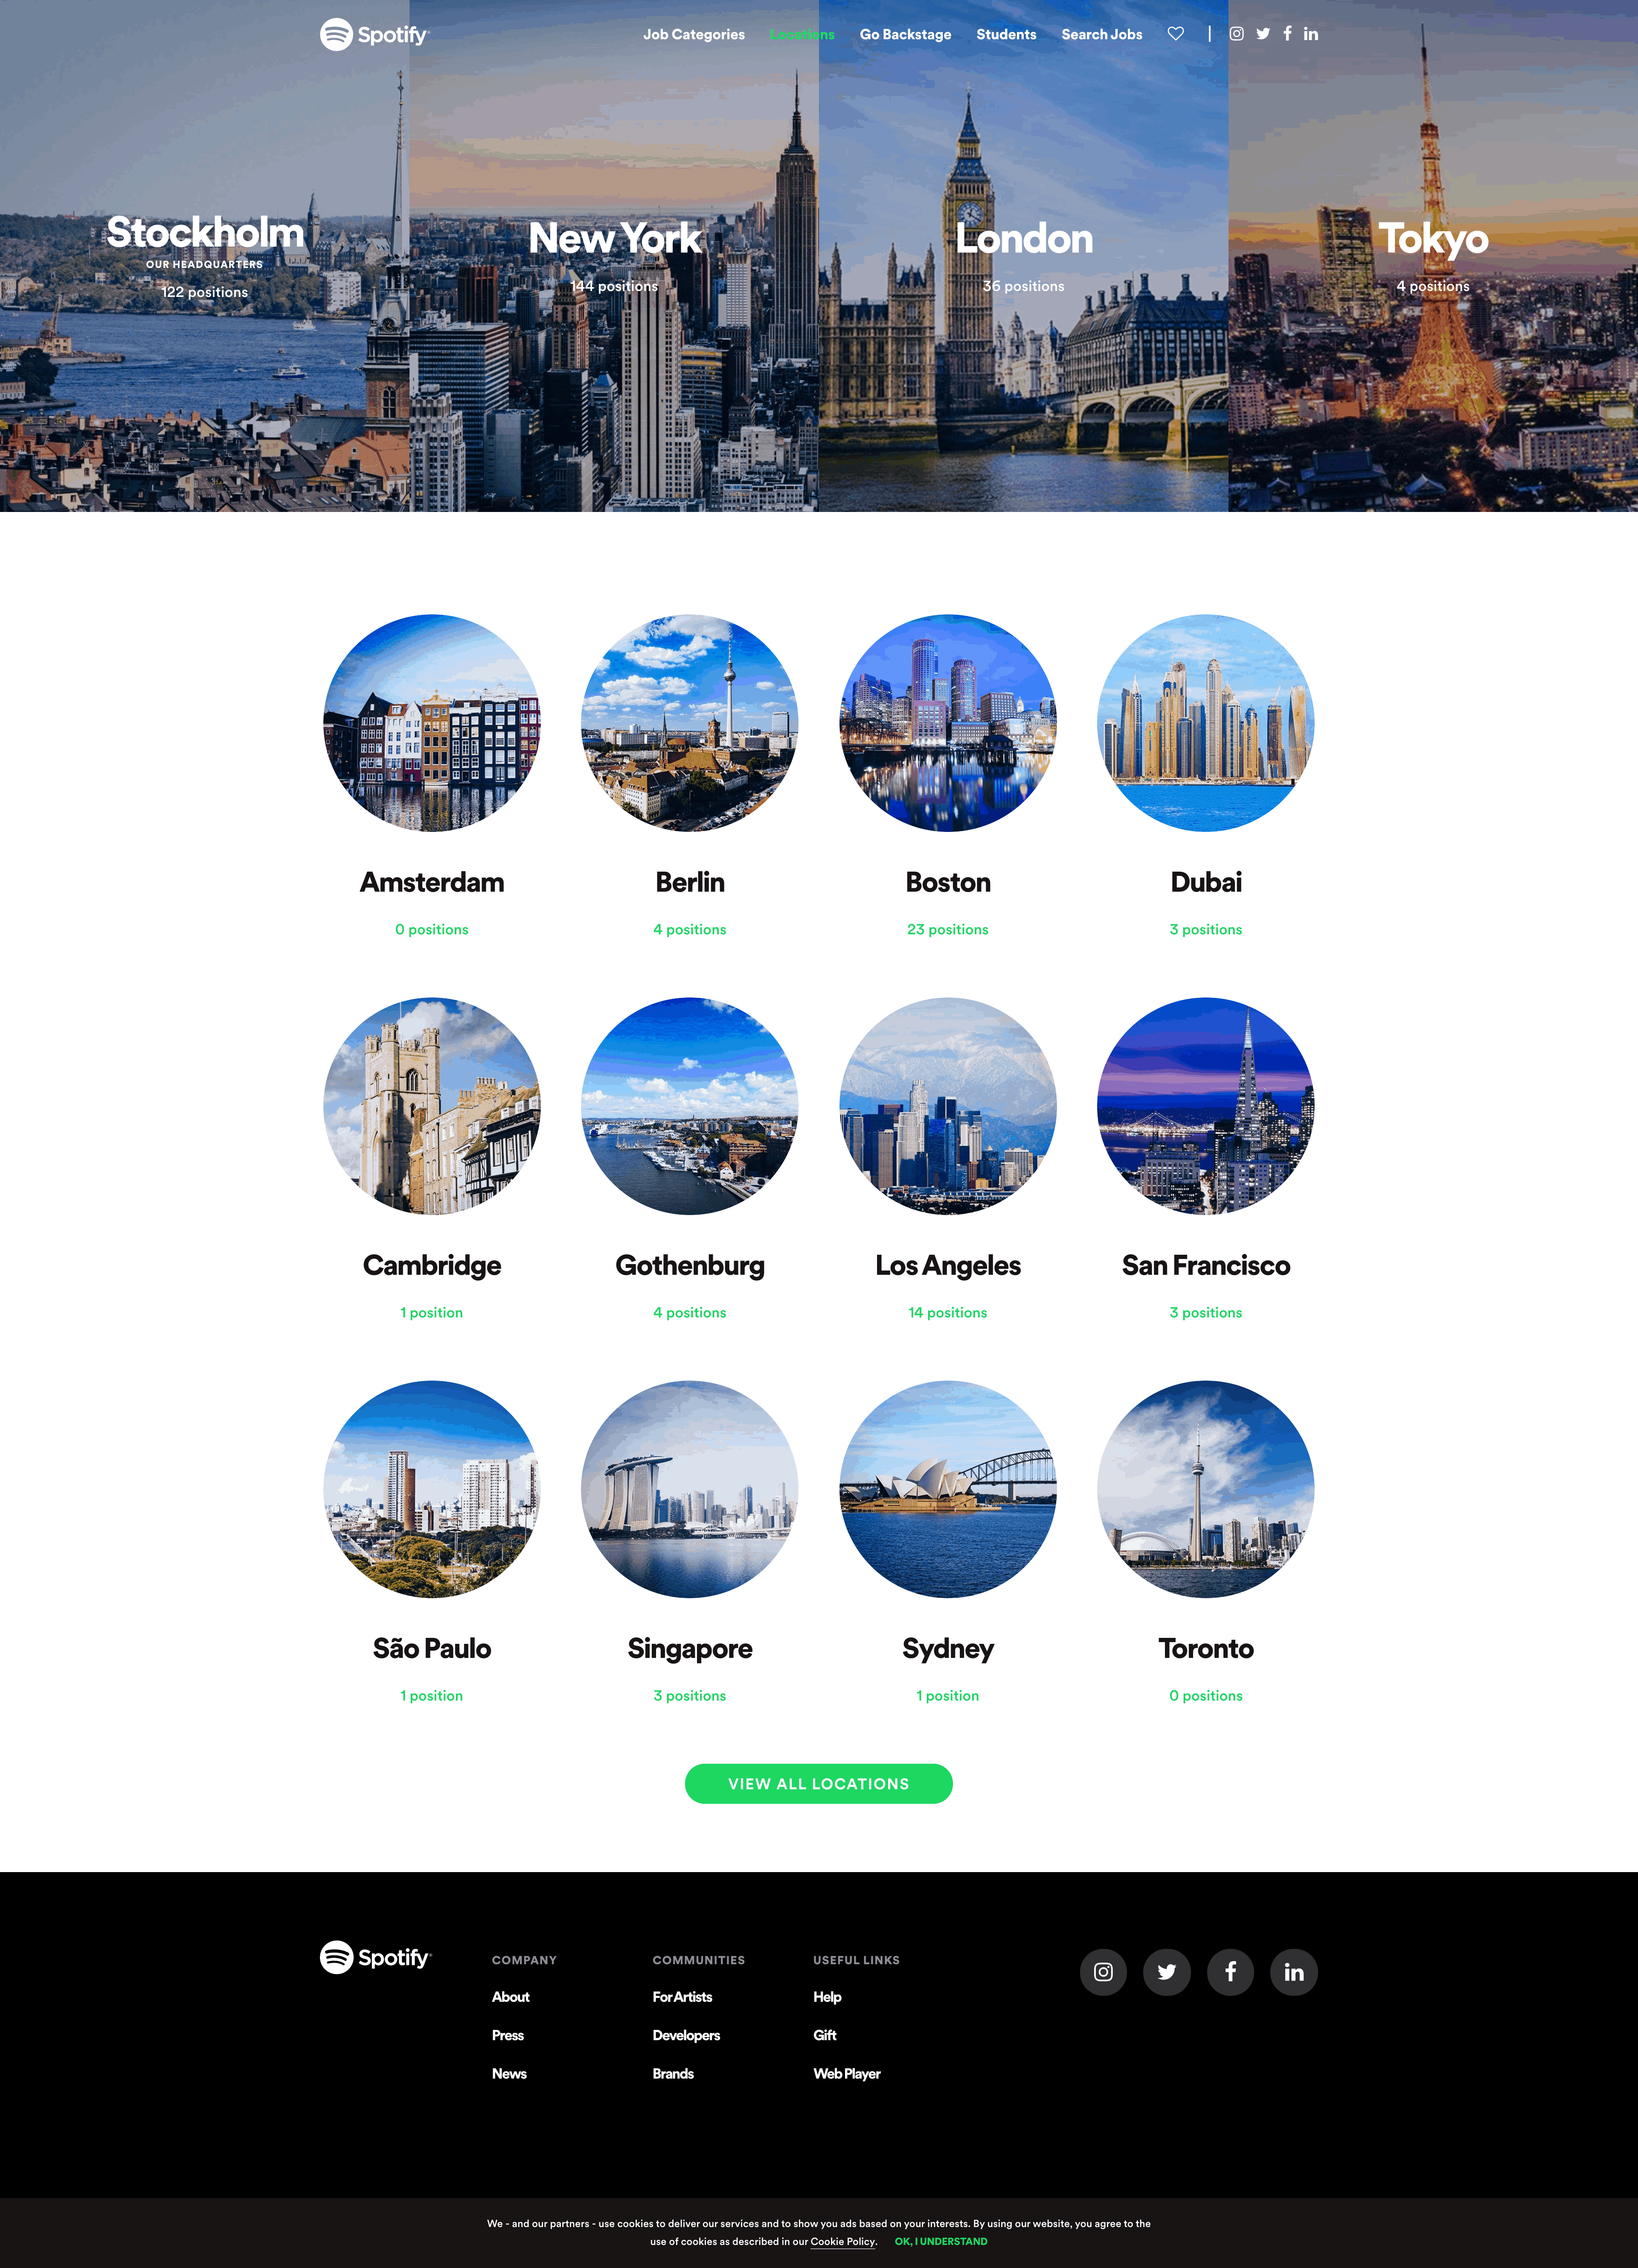 Join Us: Locations by Spotify